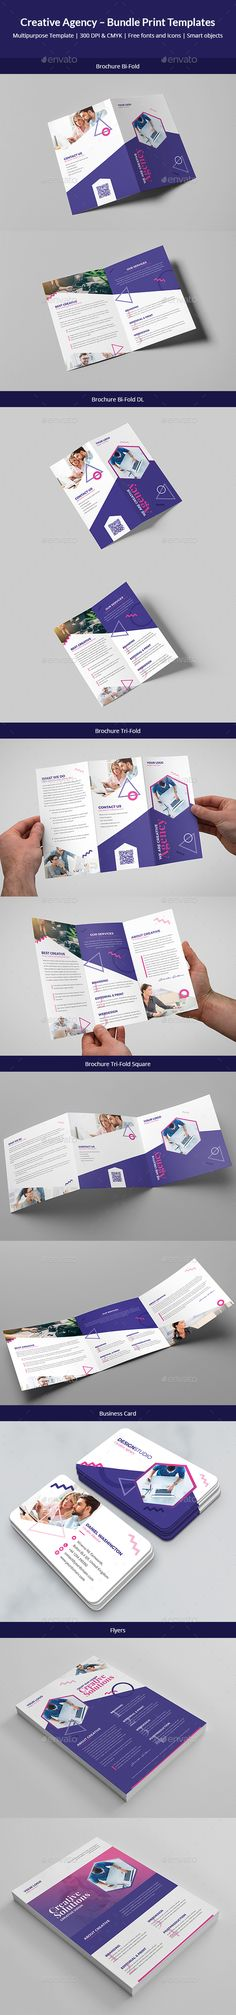 #Creative Agency – Bundle Print Templates 6 in 1 - #Corporate #Brochures